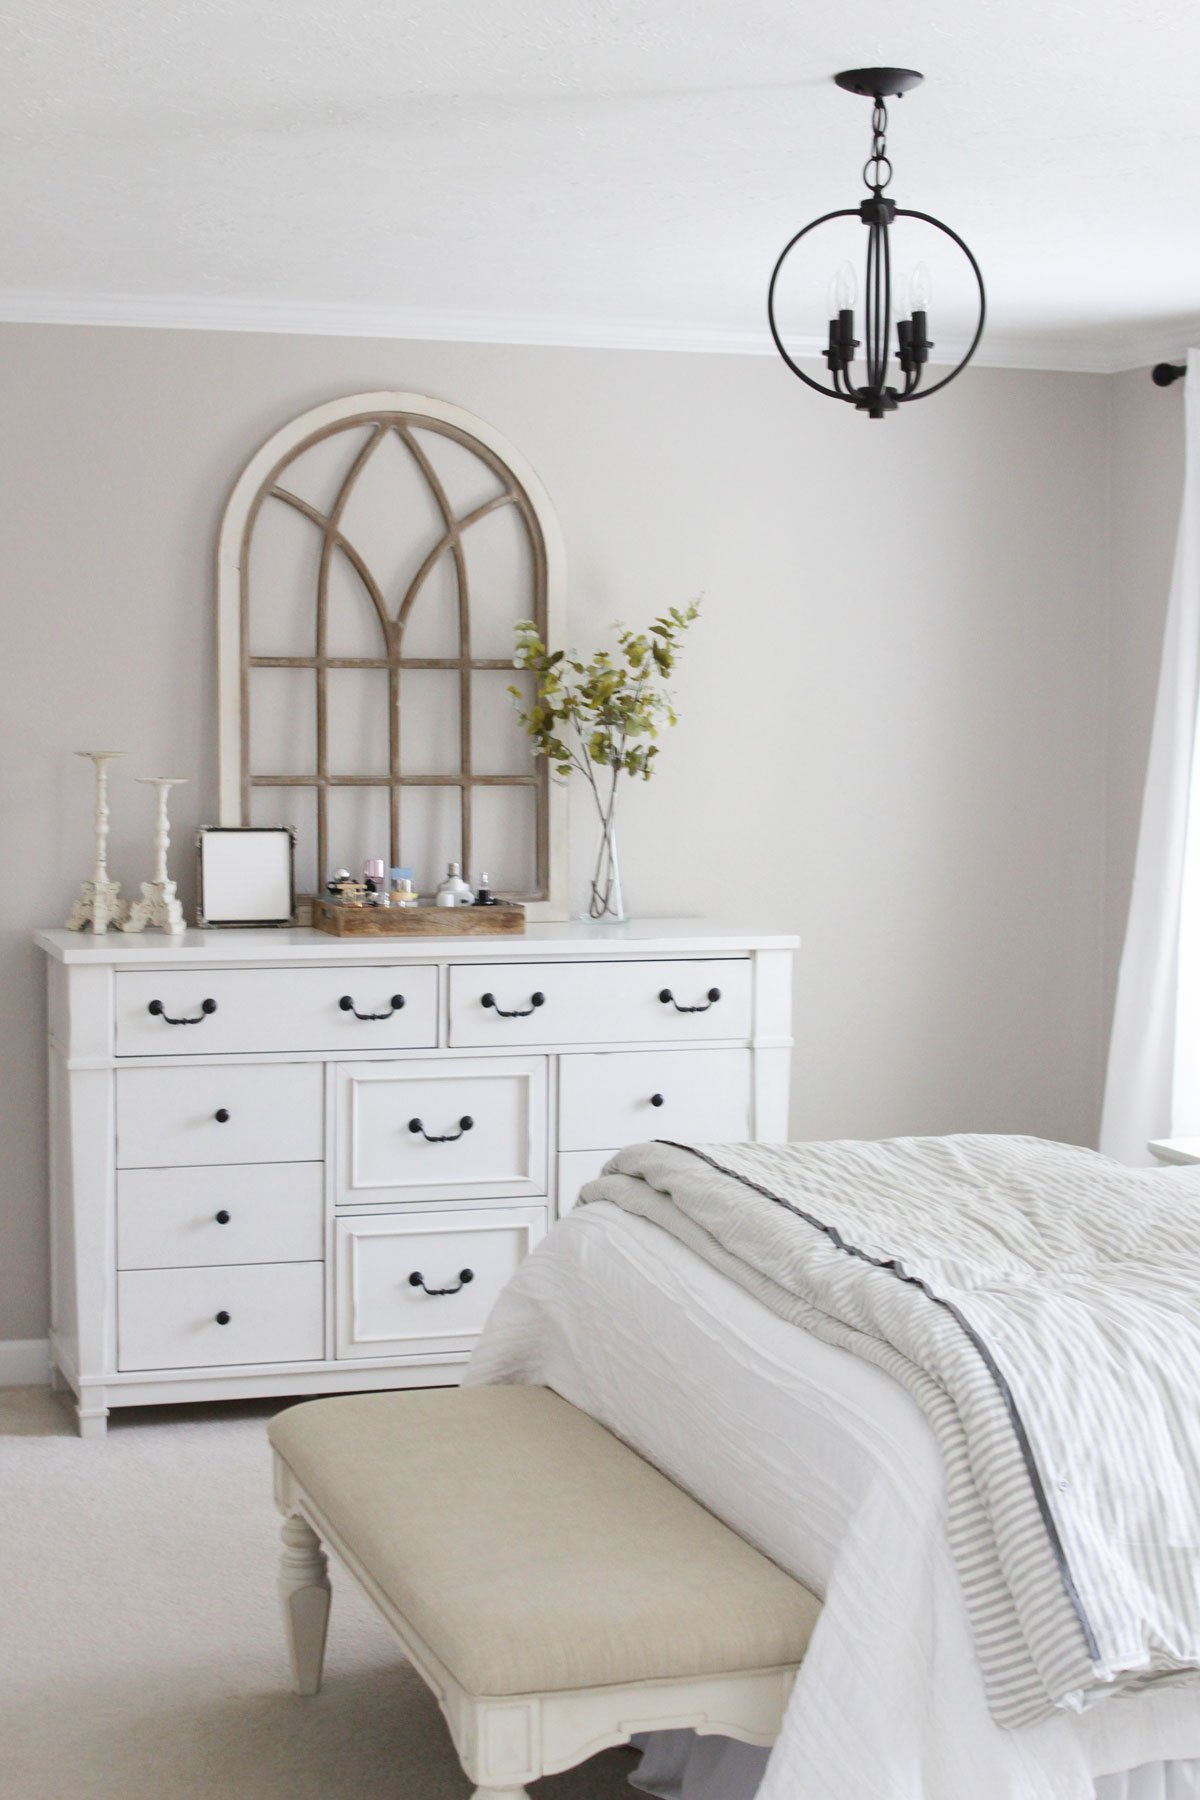 Modern Farmhouse Master Bedroom Reveal white distressed dresser